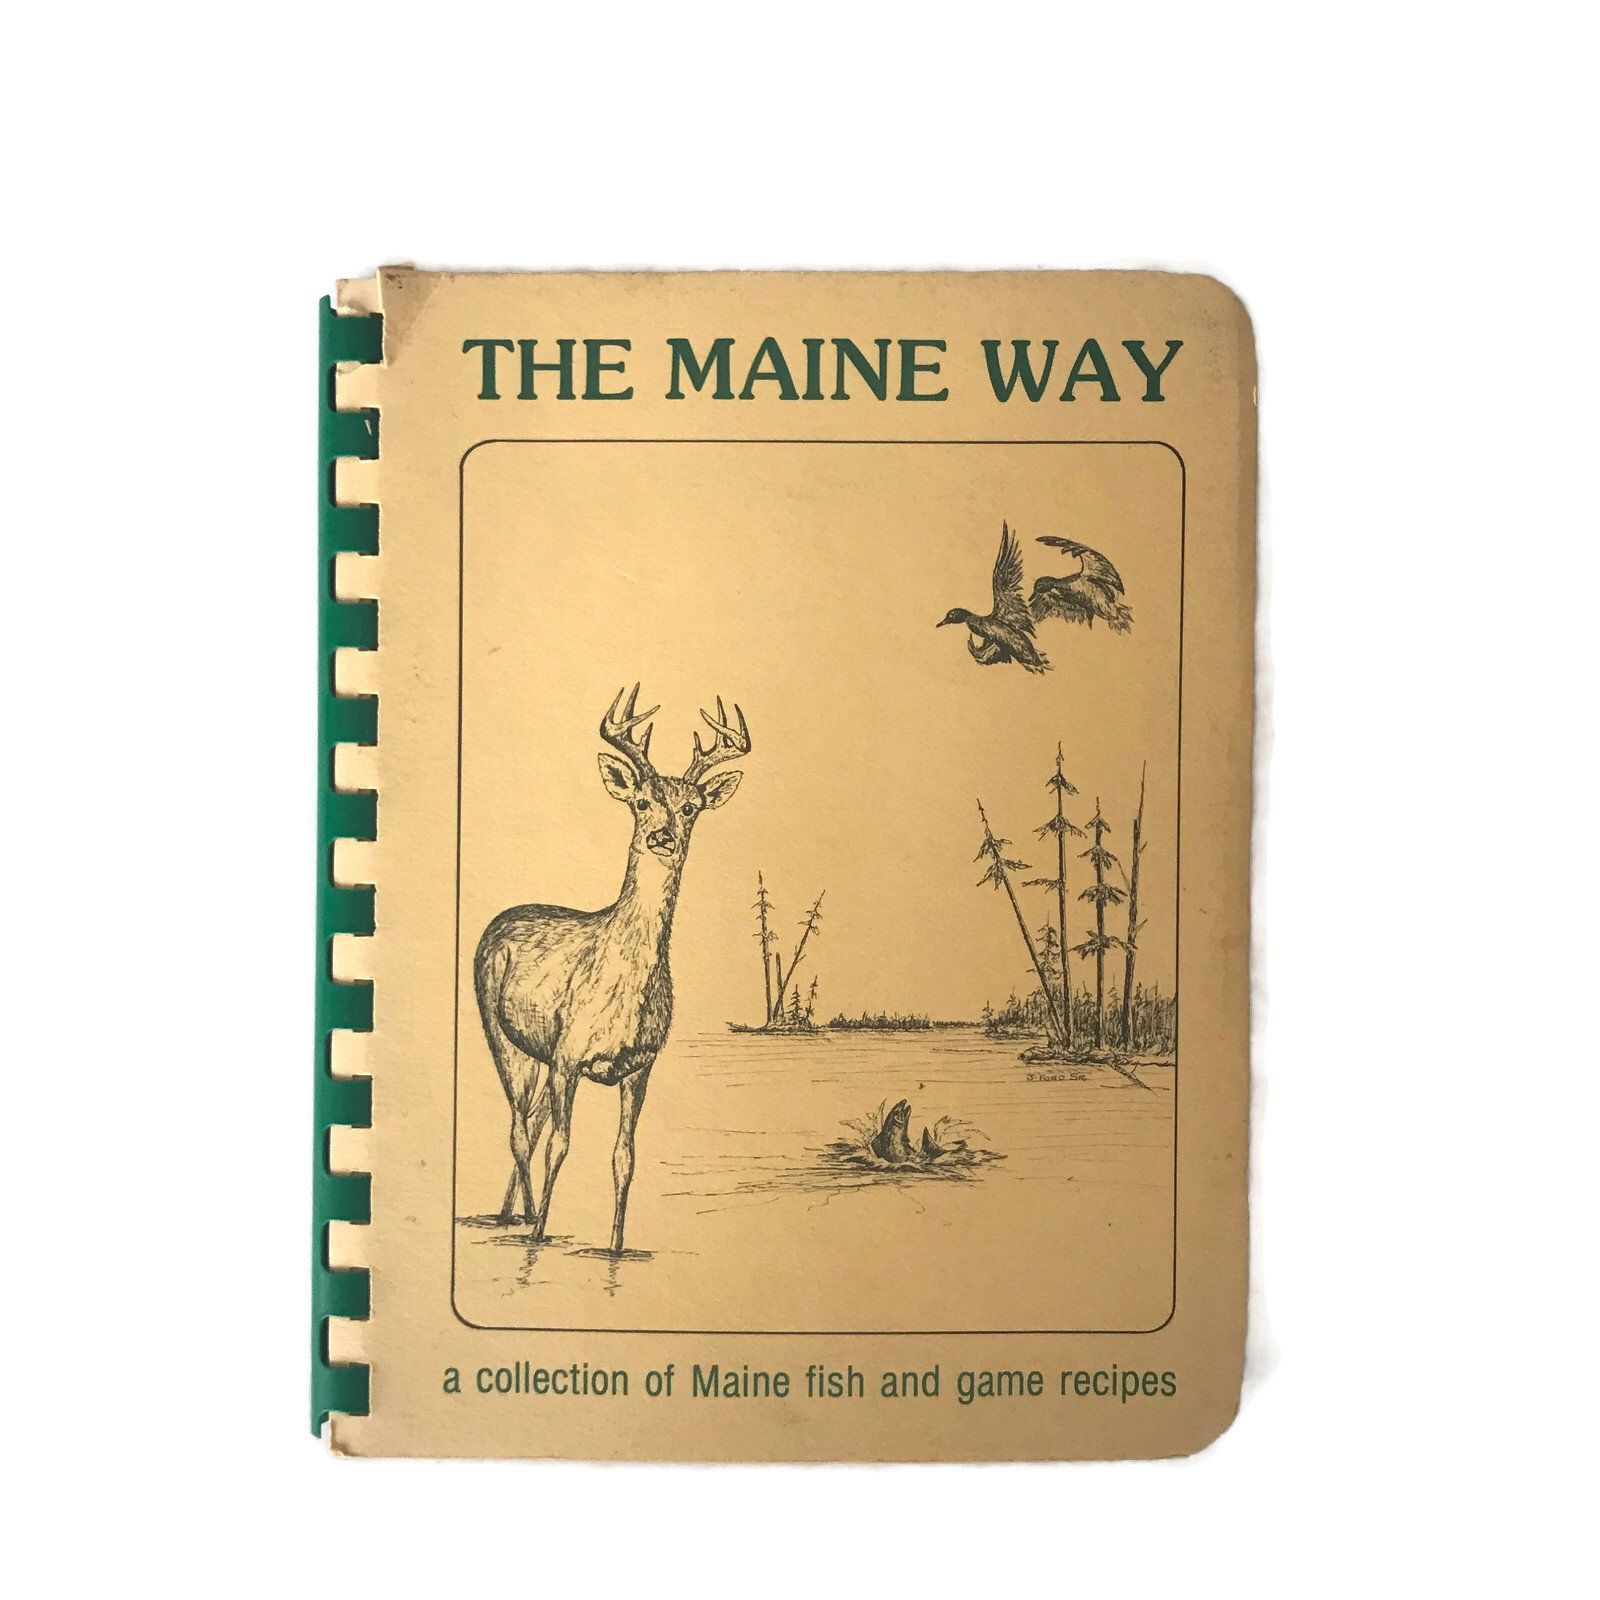 Vintage Cookbook The Maine Way Fish and Game Recipes